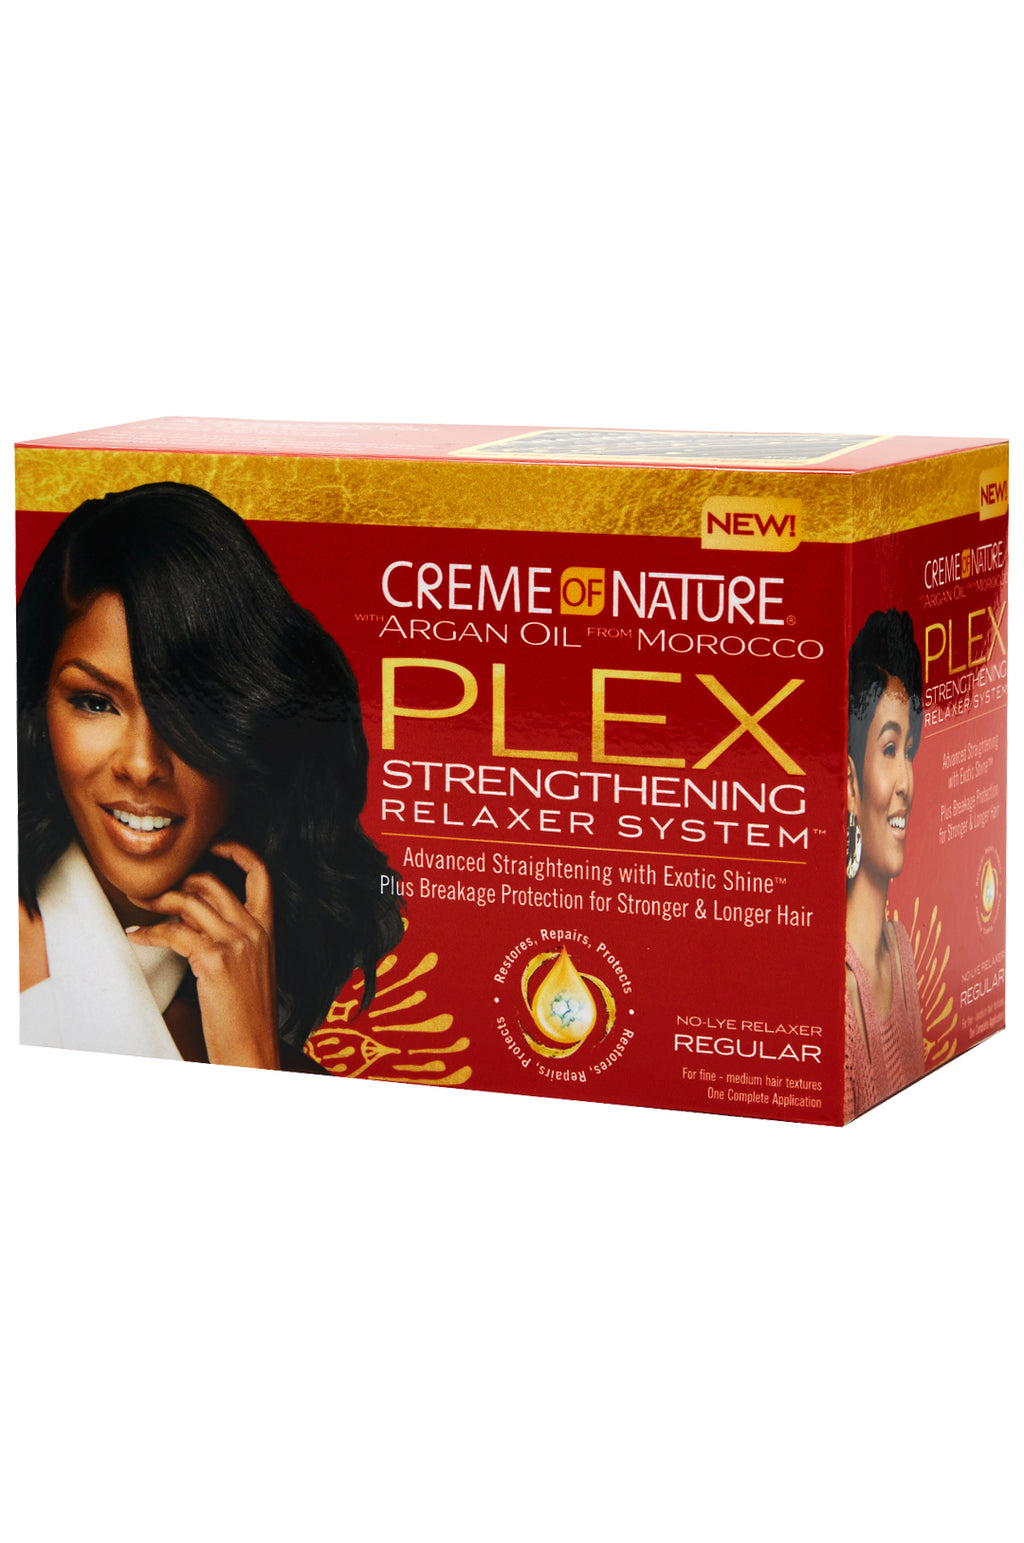 Crème Of Nature Argan Oil PLEX Strengthening Relaxer System - Regular